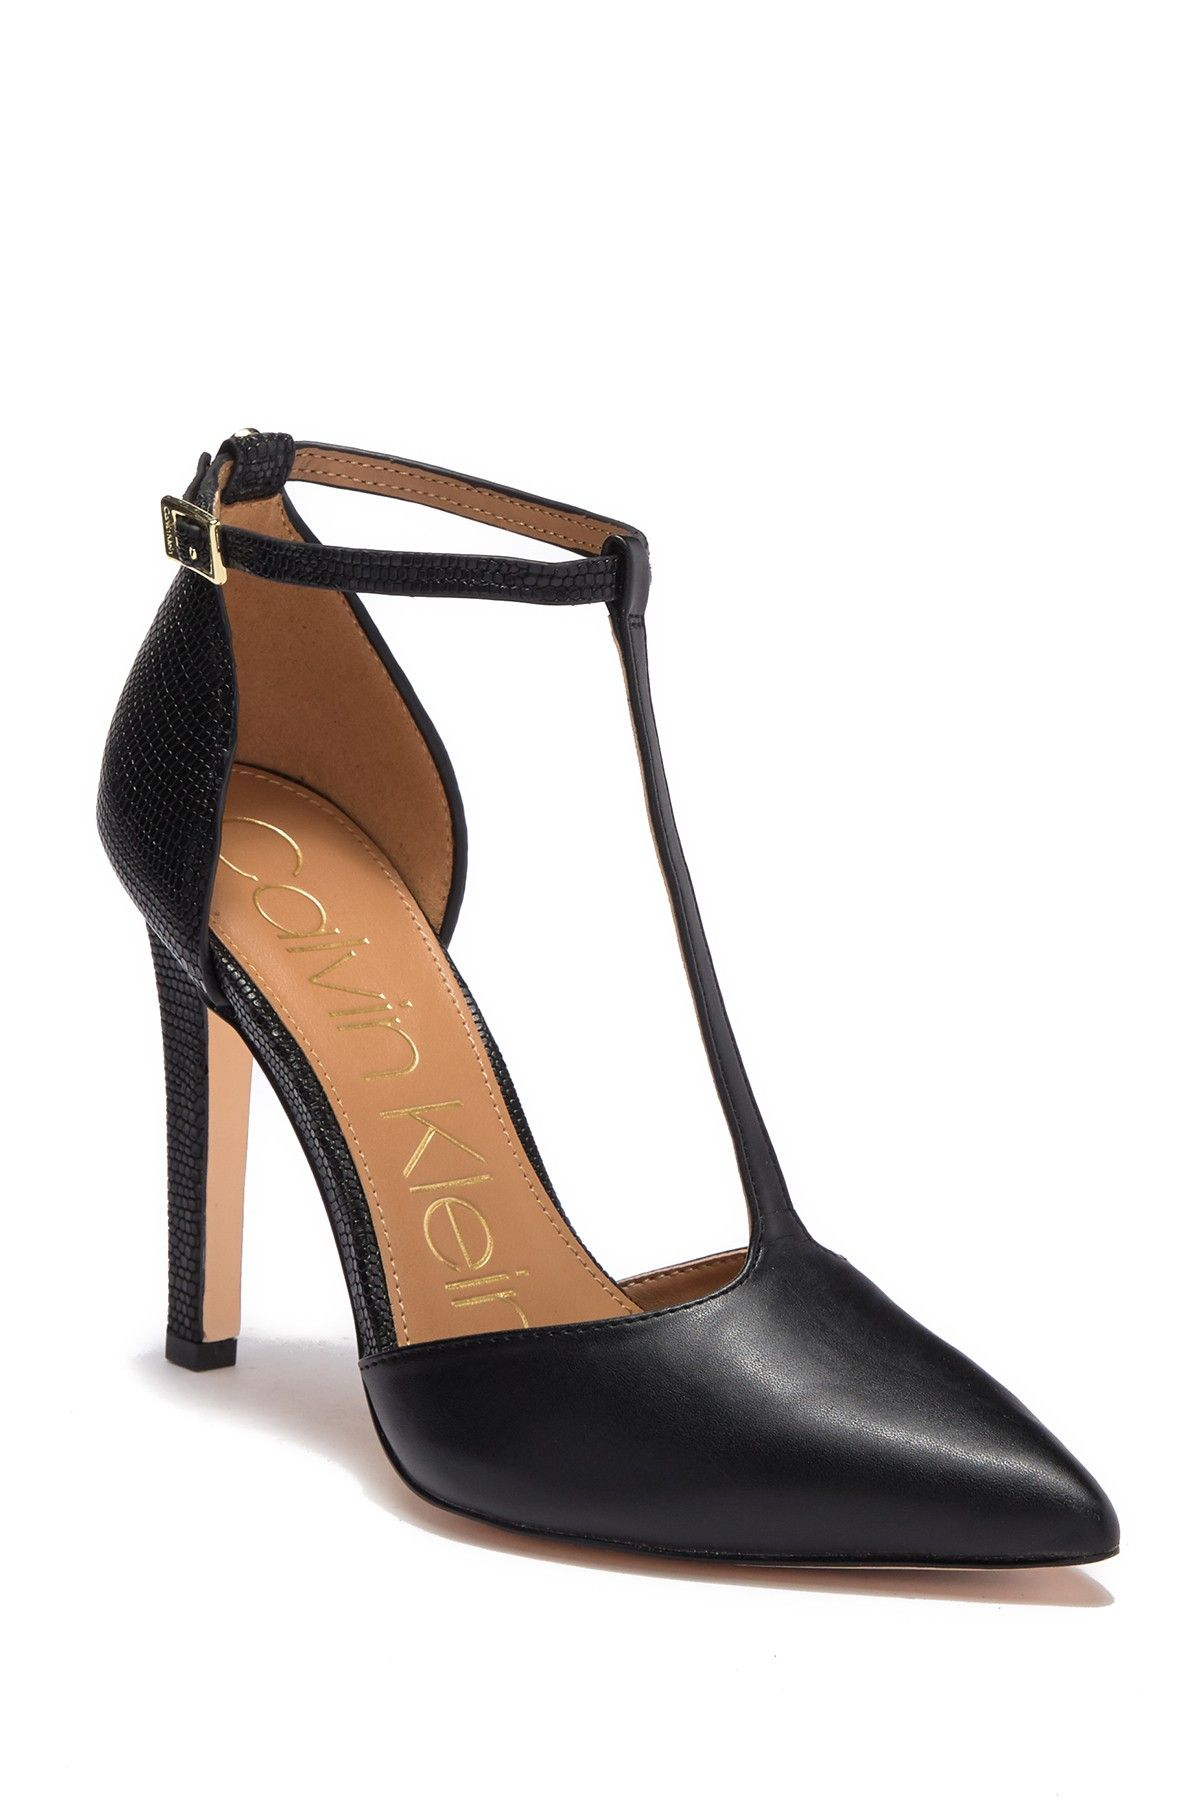 bc9089714 Calvin Klein - Brandy T-Strap Leather Lizard Embossed Stiletto is now 50%  off. Free Shipping on orders over $100.